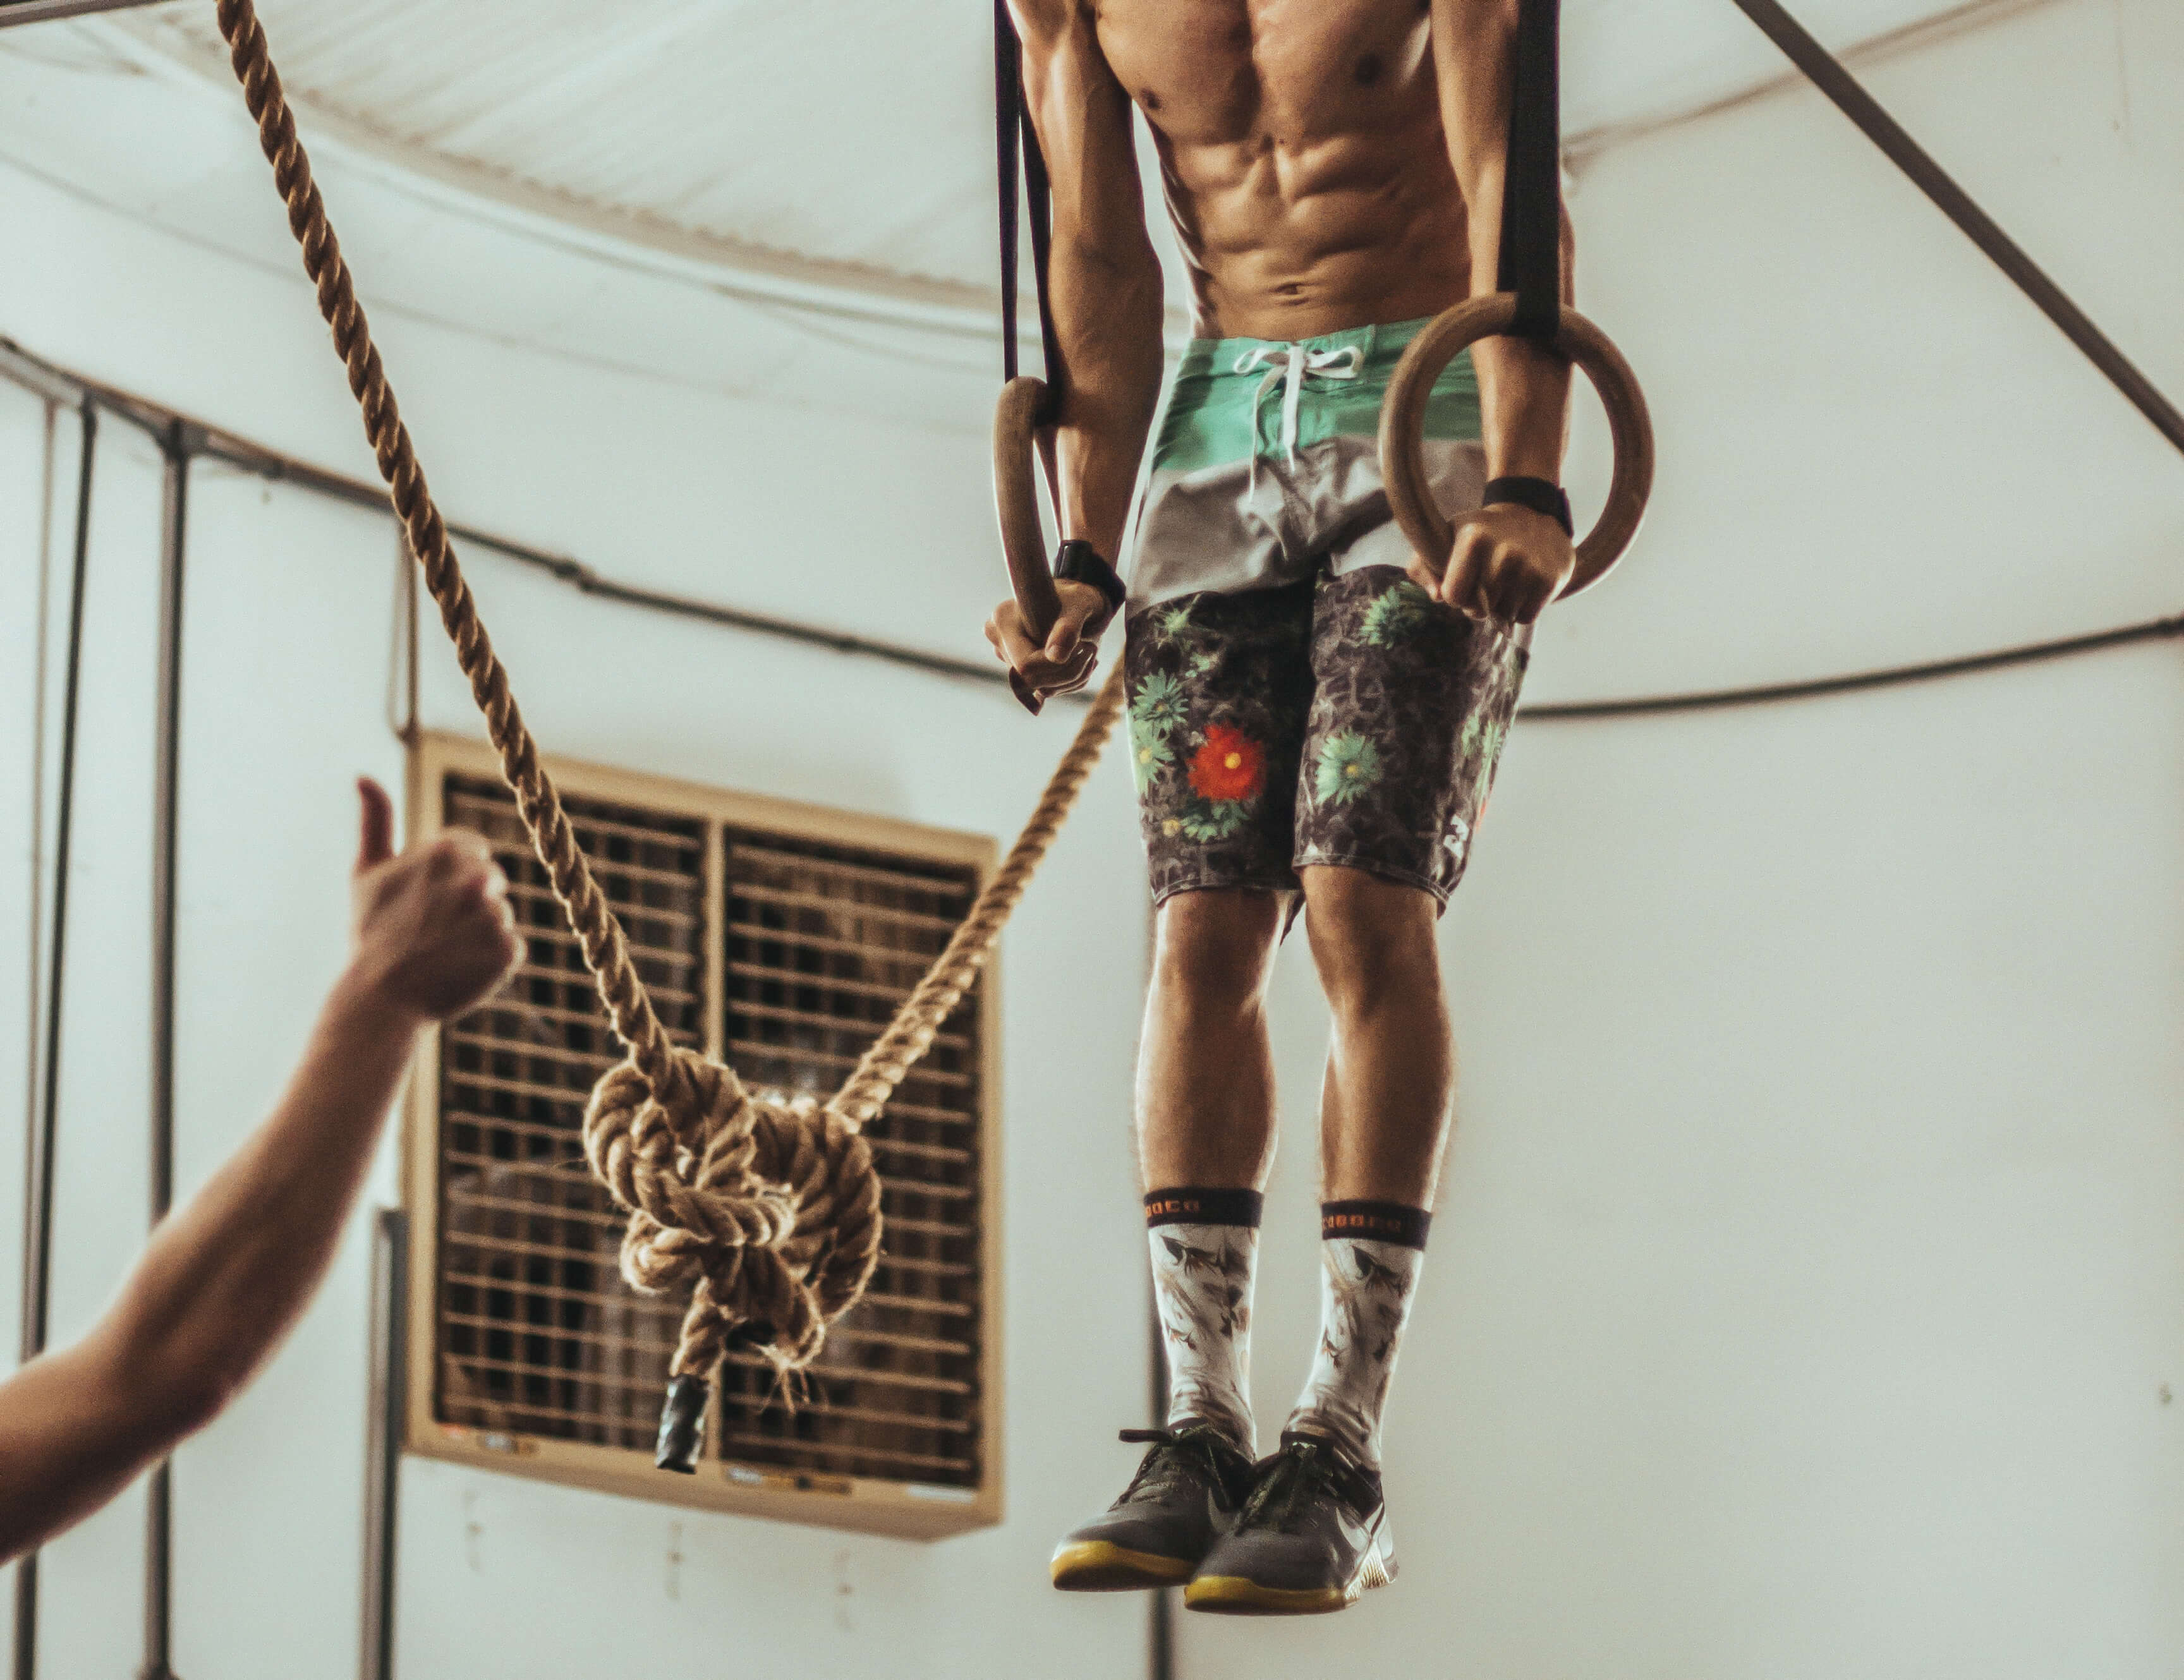 Male crossfitter training muscle ups